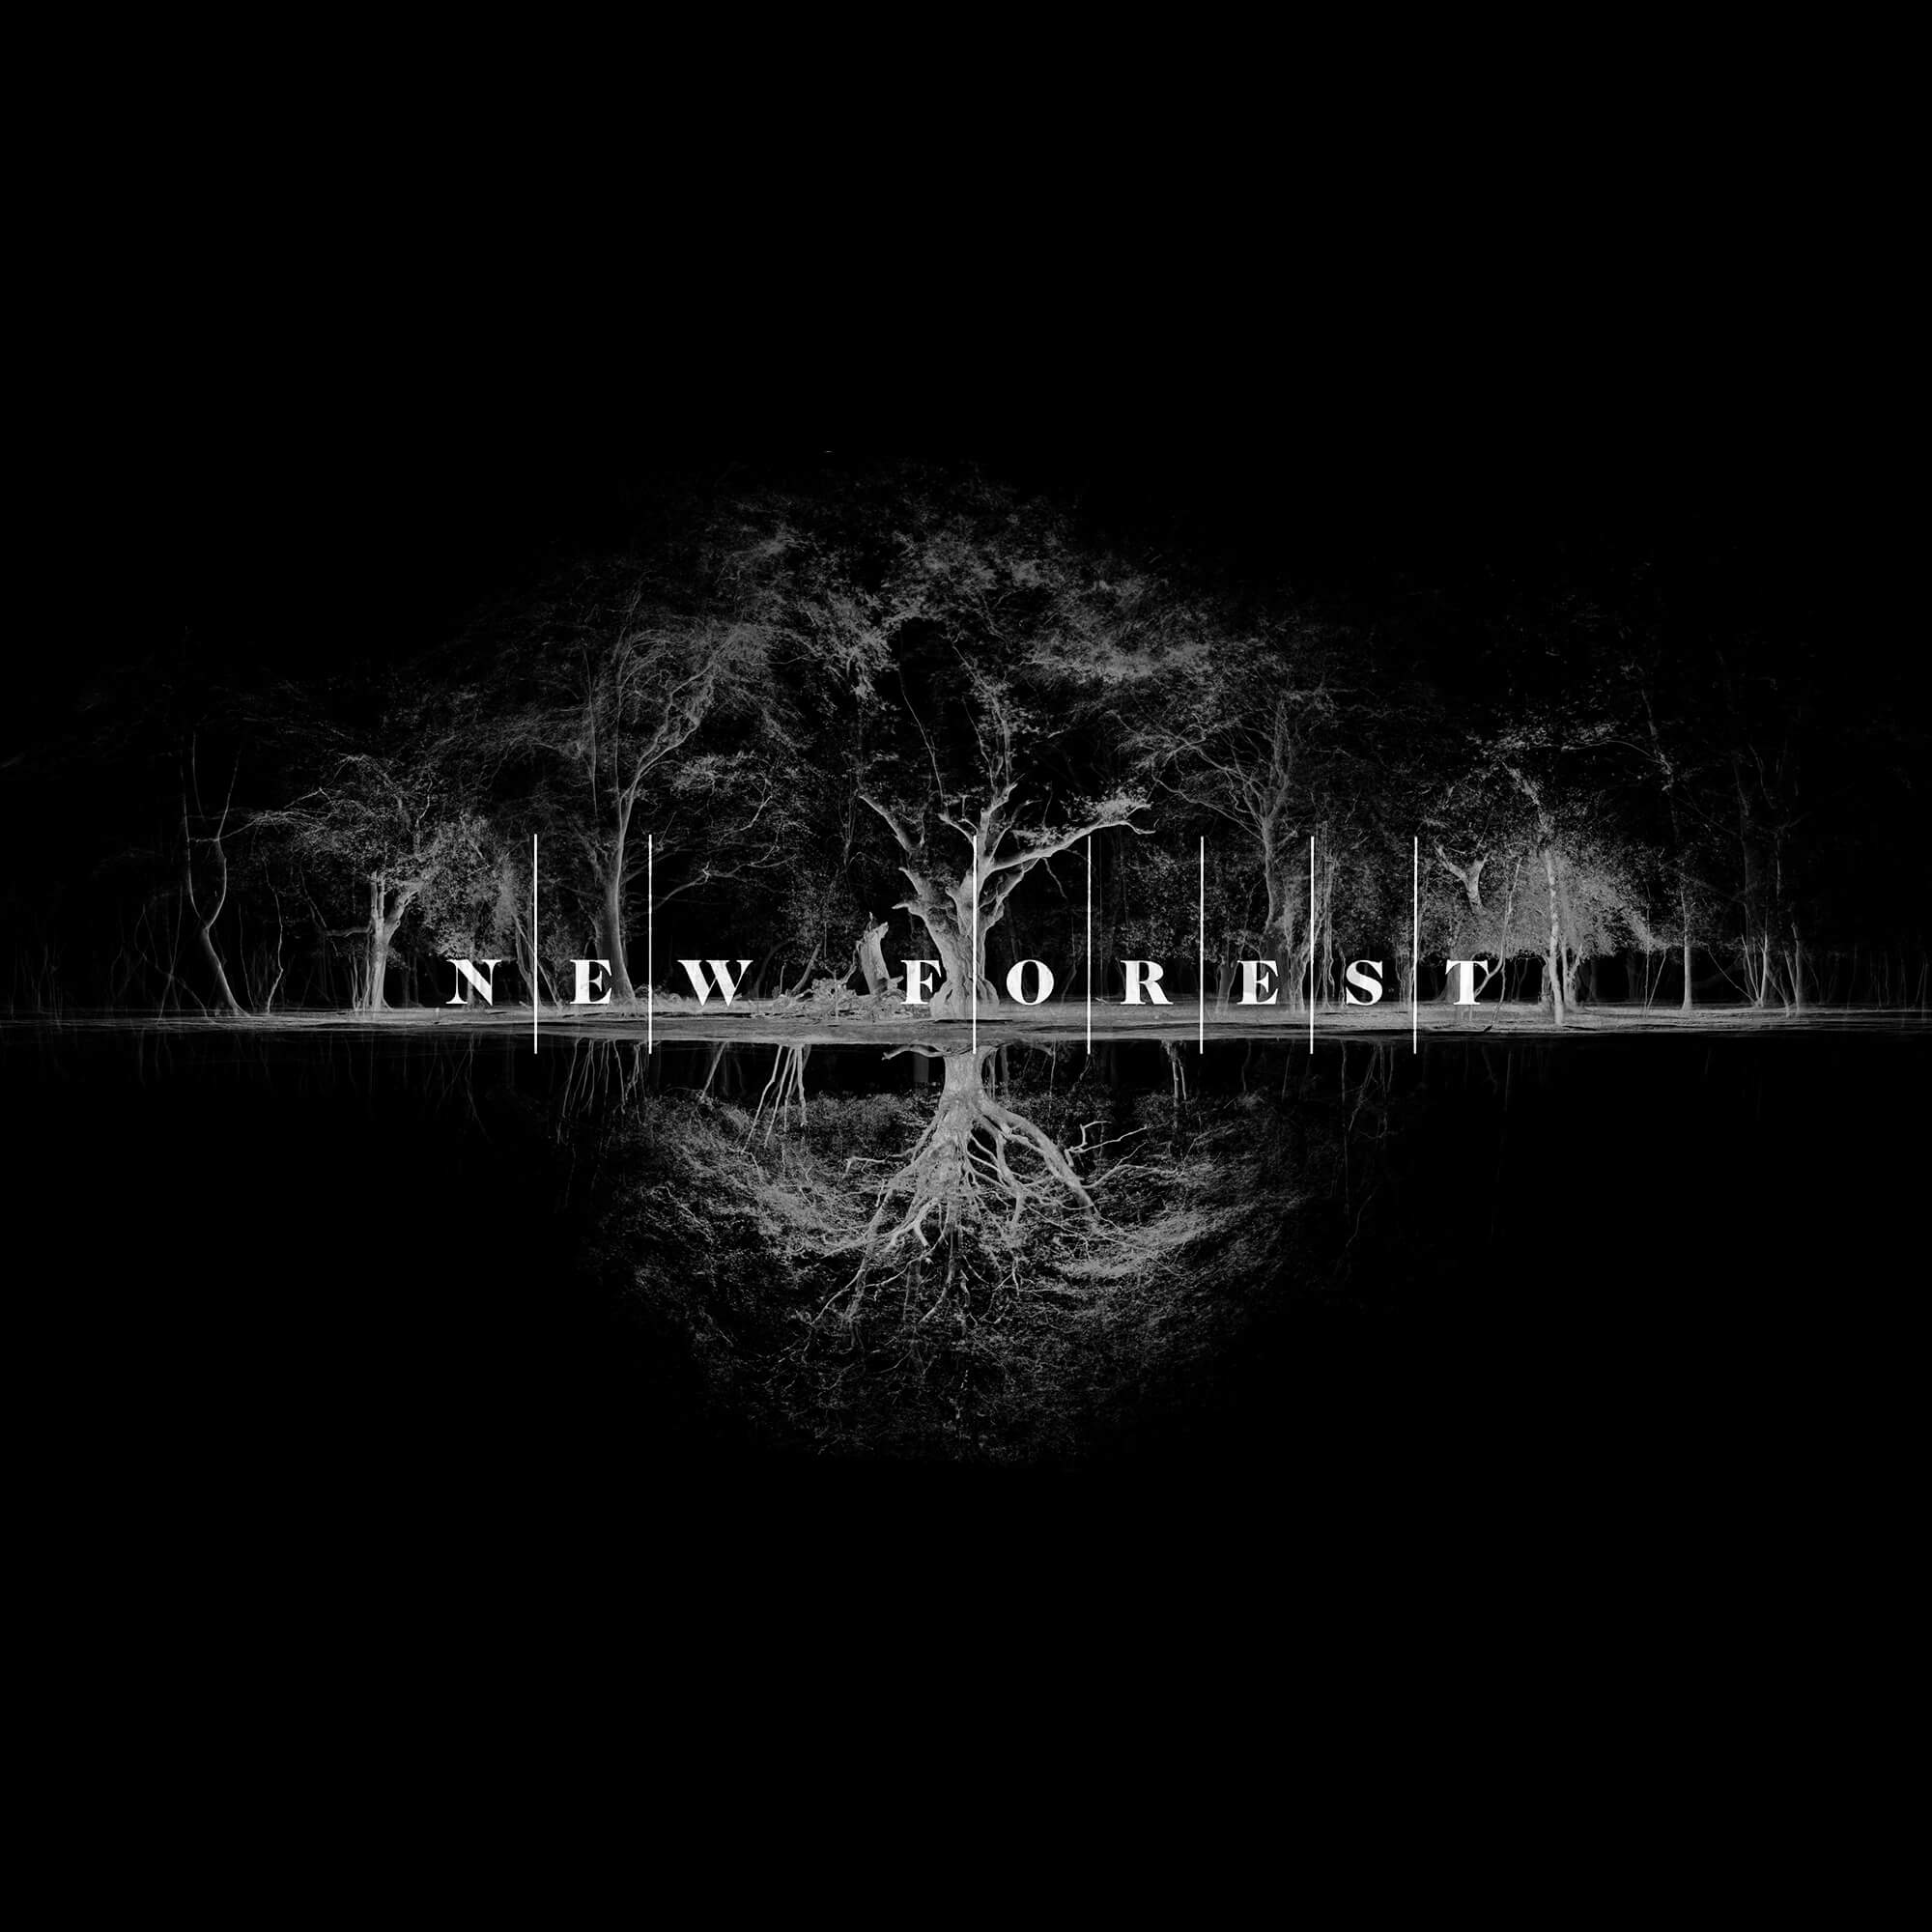 new-forest-film-co-ident-2000x2000.jpg